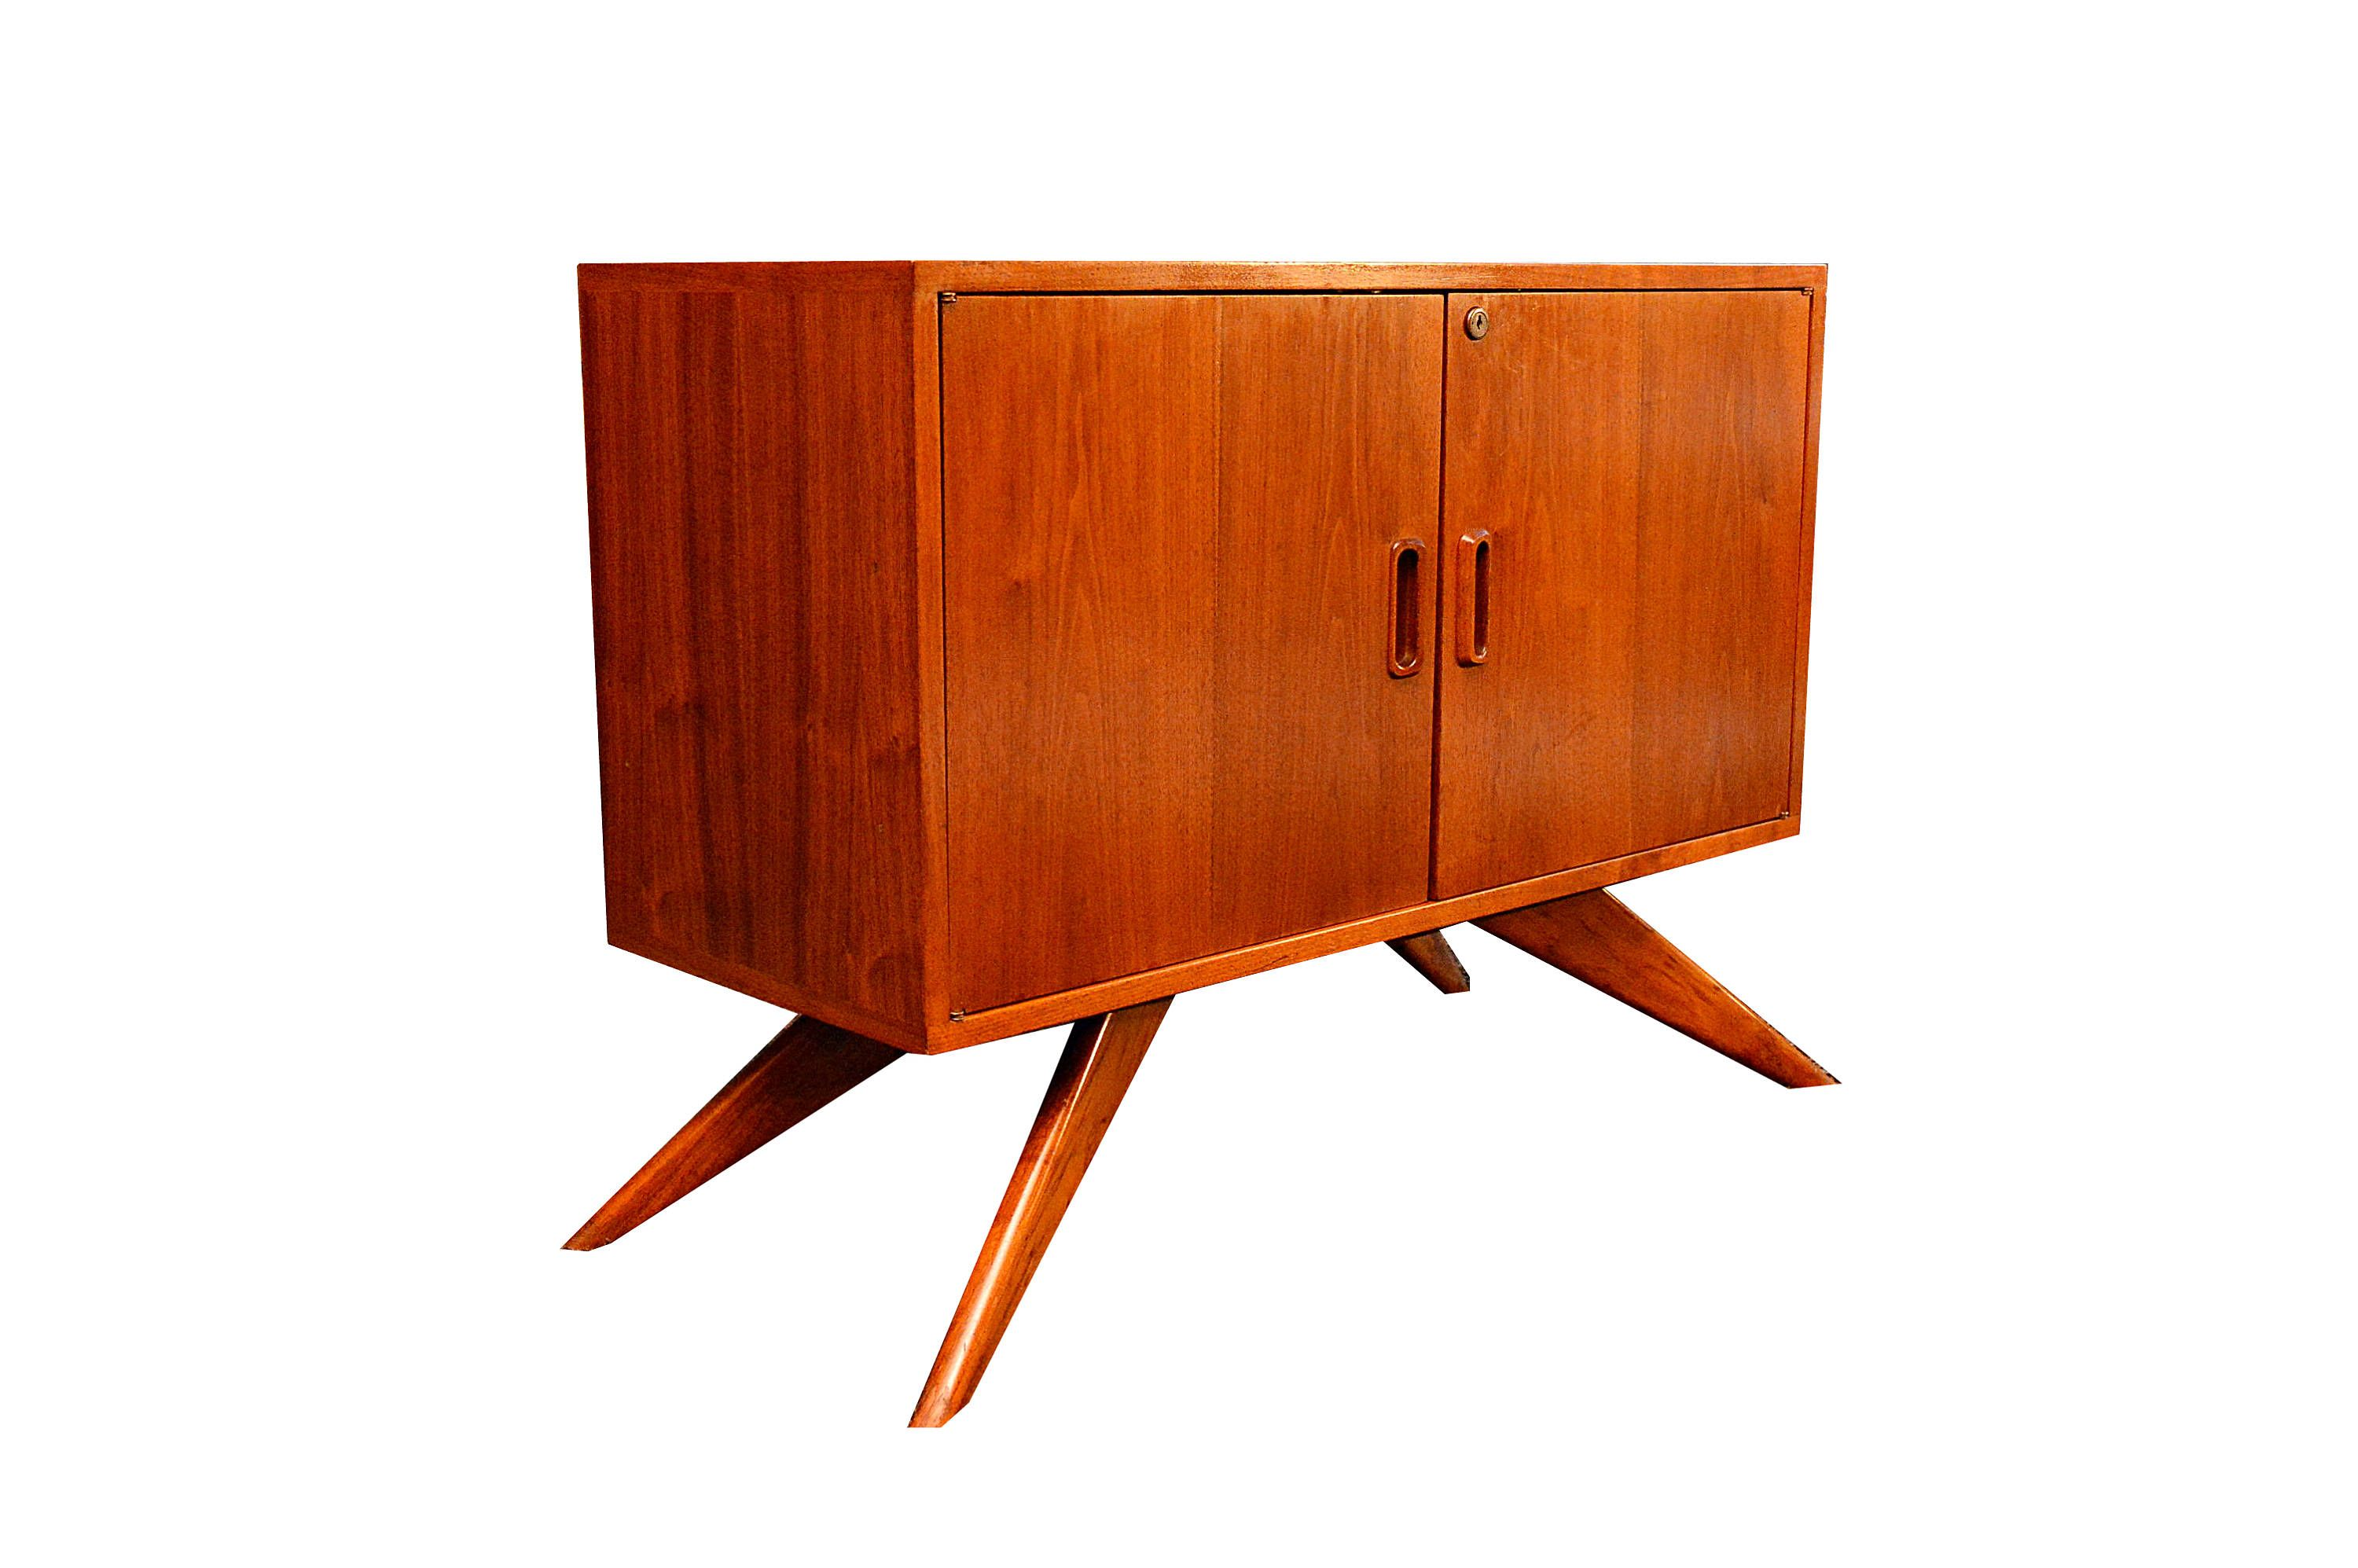 Small Danish Credenza : Small danish walnut credenza or cabinet for sale at stdibs